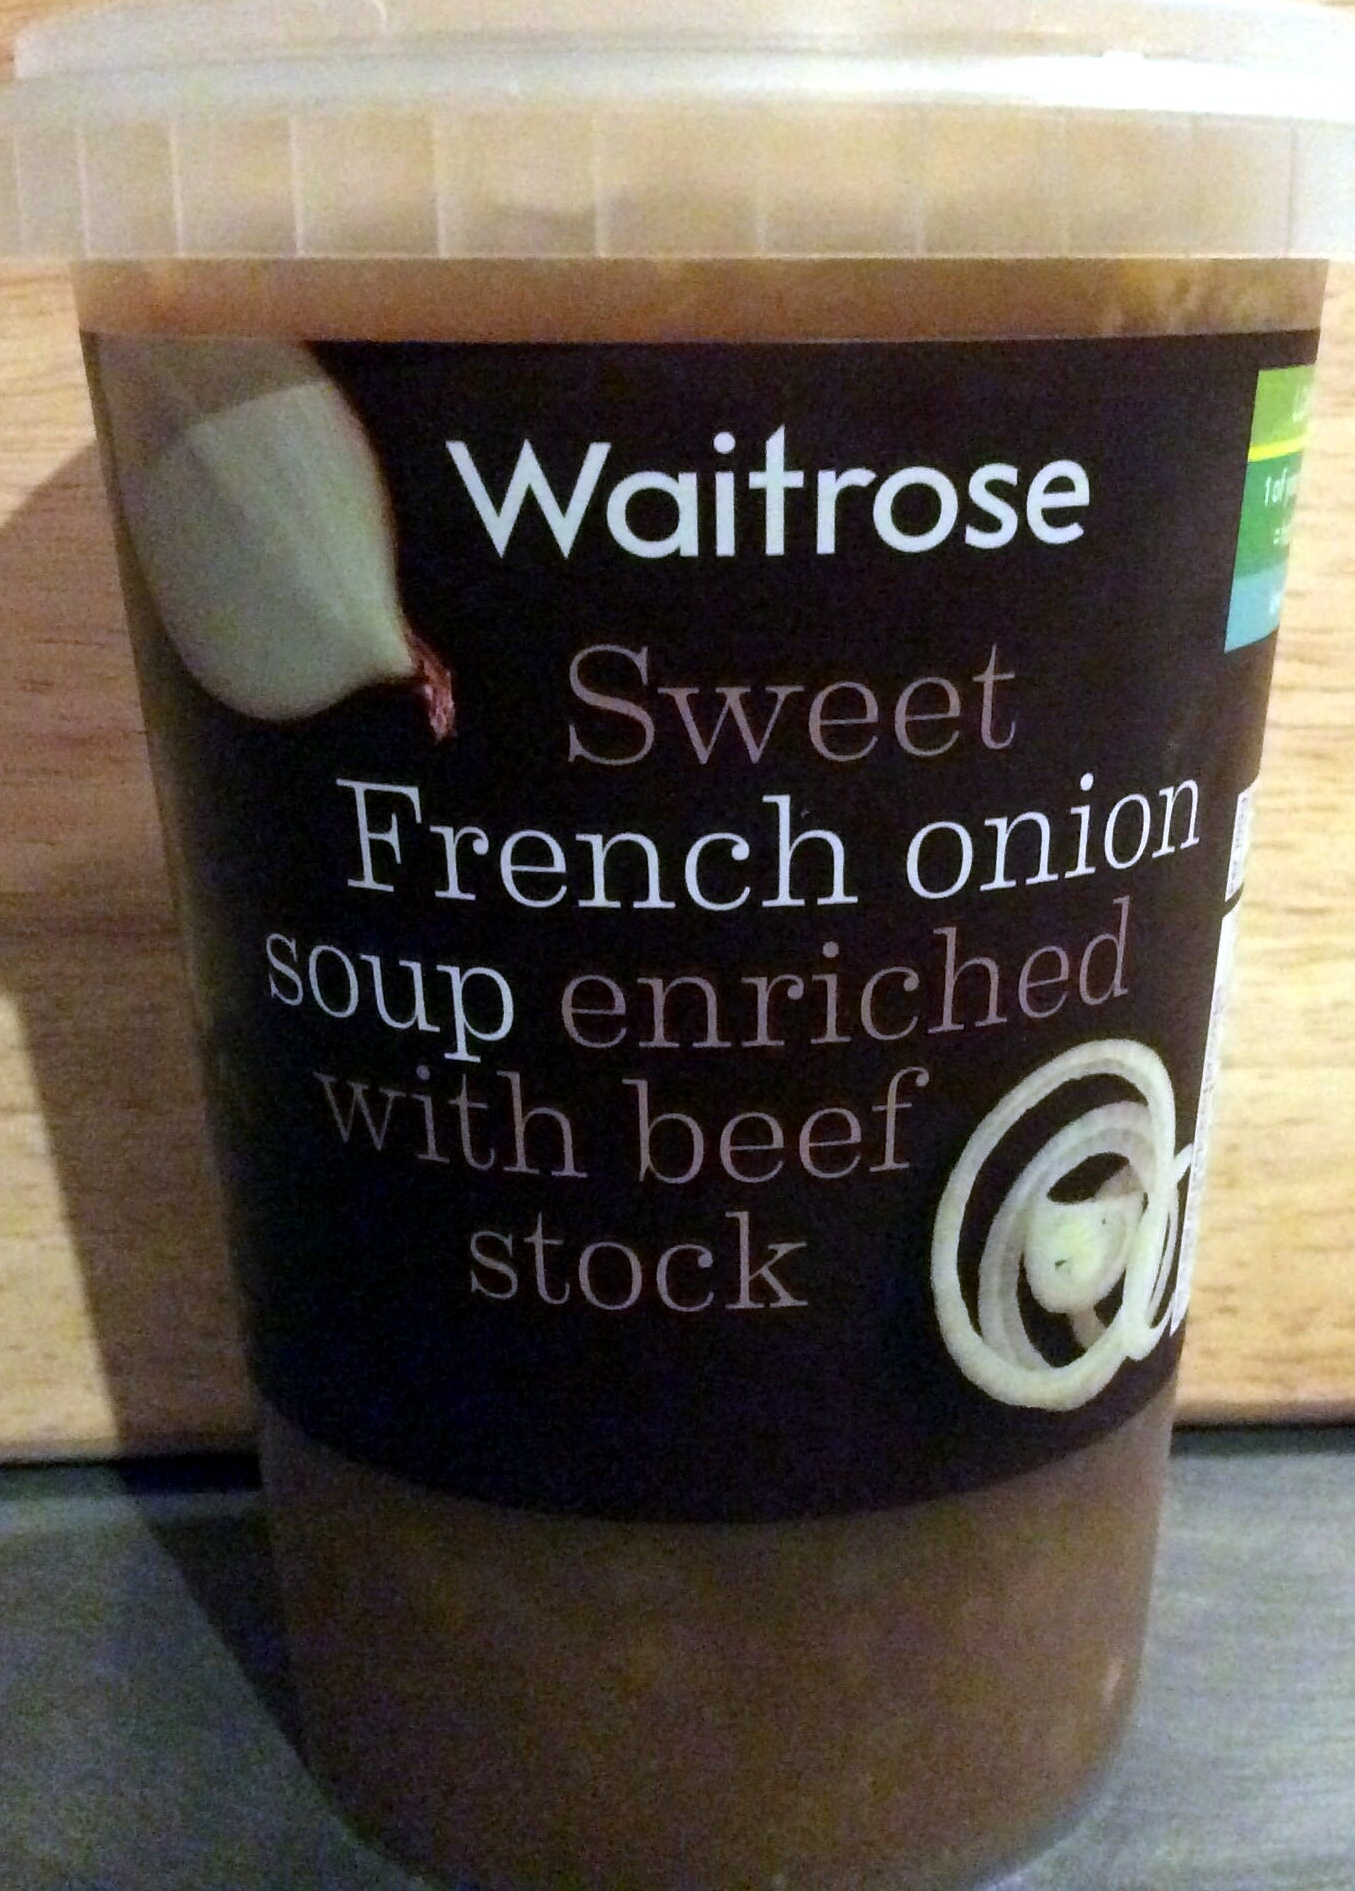 Sweet French onion soup enriched with beef stock - Produit